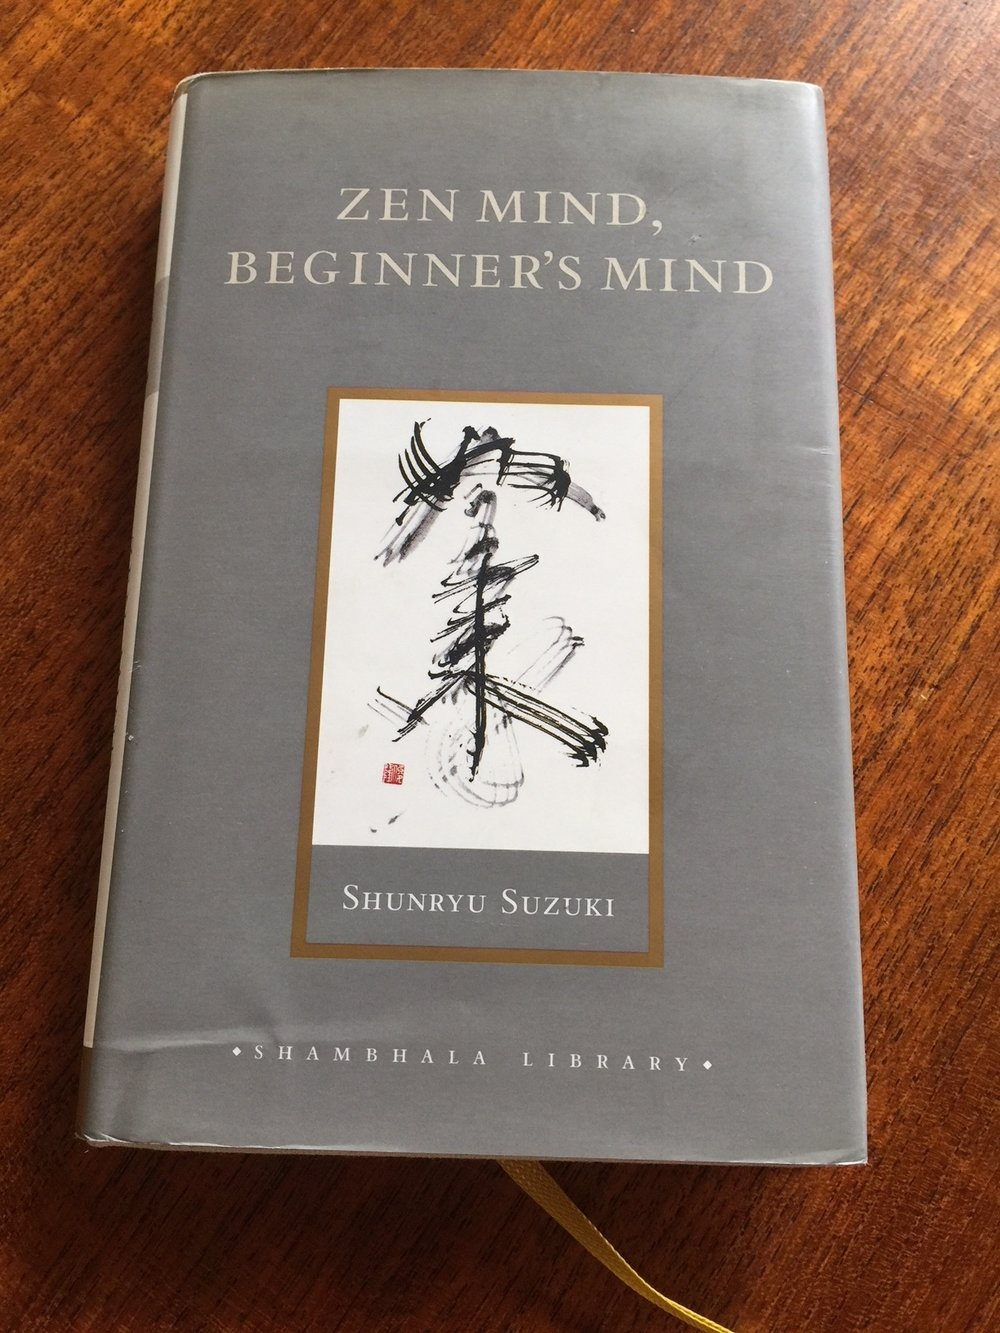 a critical book review on zen mind beginners mind by shunryu suzuki